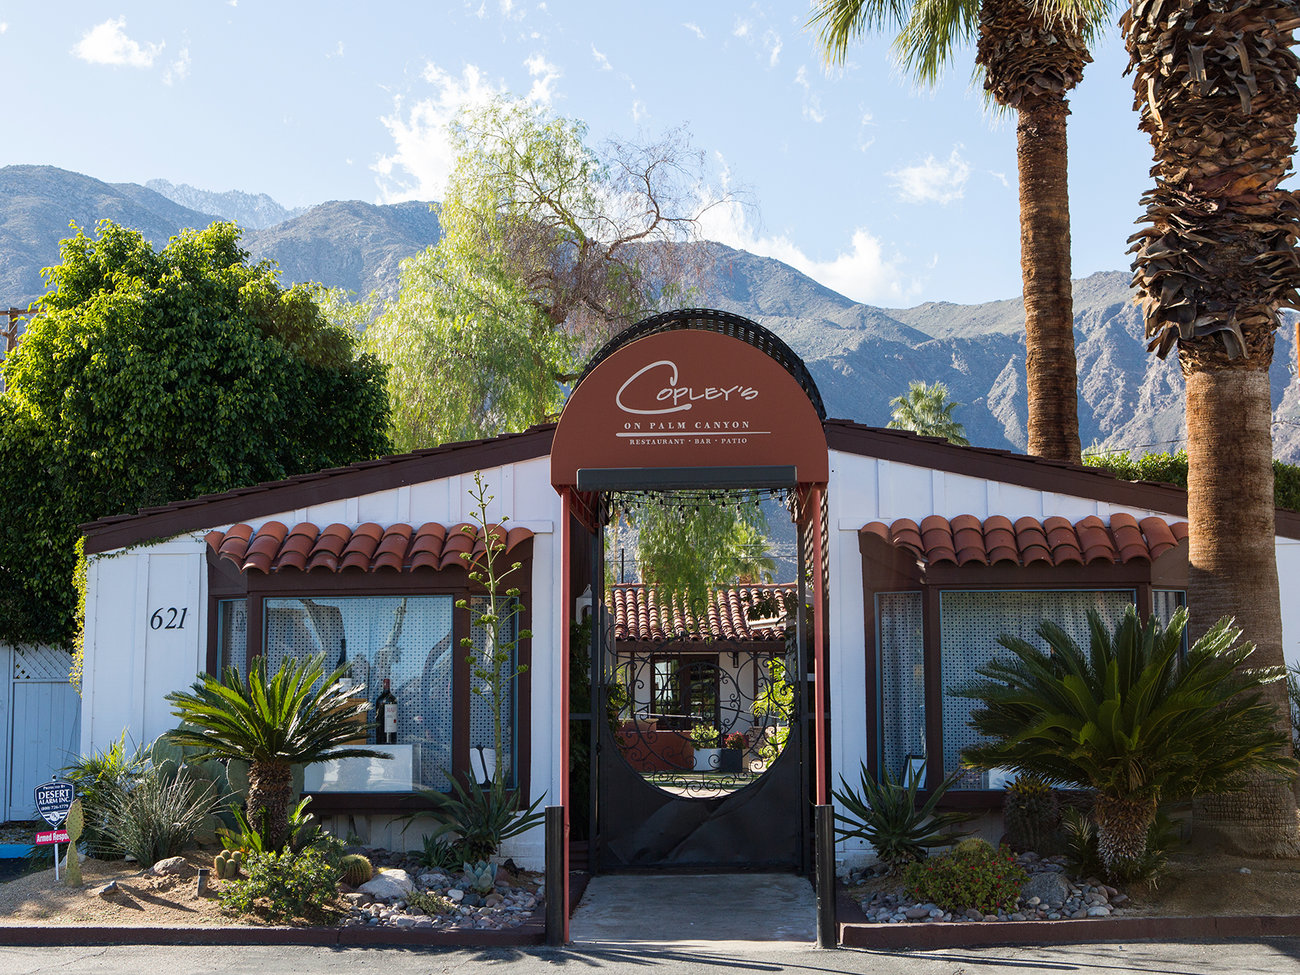 Copley's on Palm Canyon Restaurant in Palm Springs